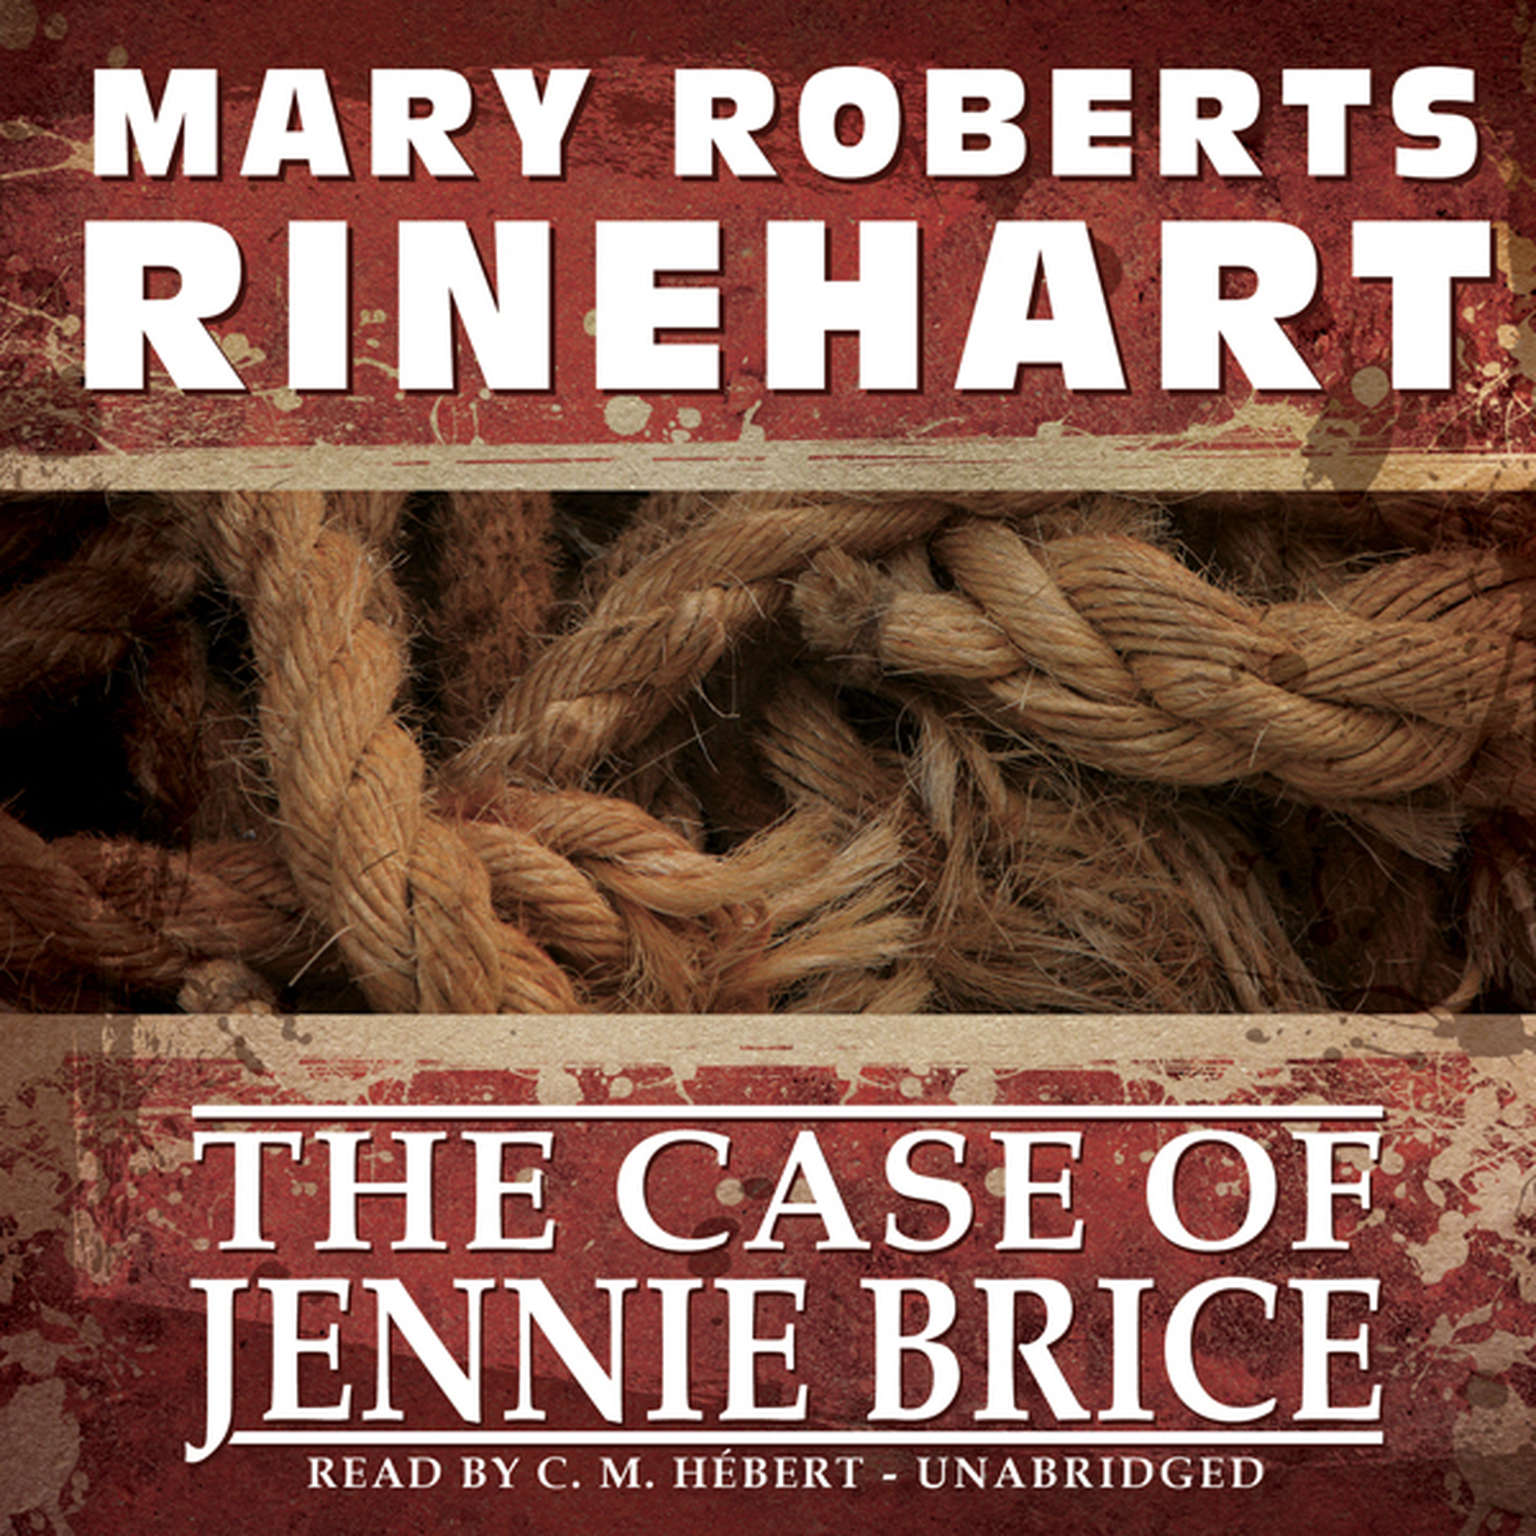 Printable The Case of Jennie Brice Audiobook Cover Art